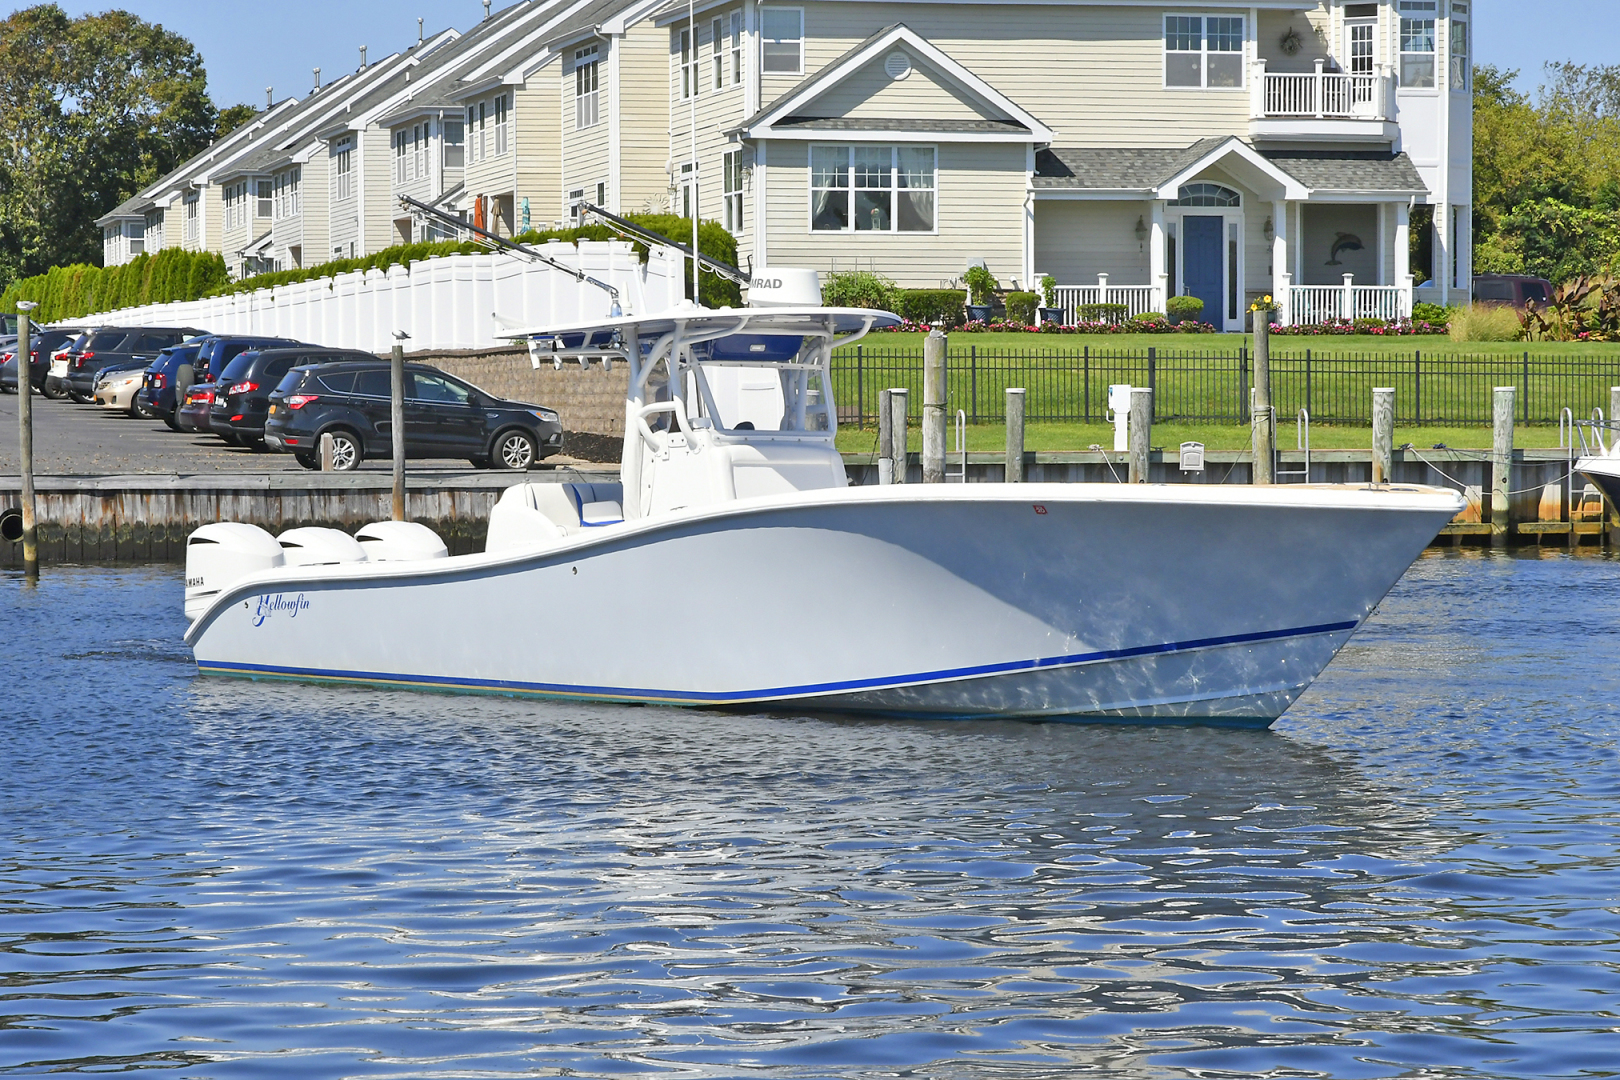 Yellowfin-36 Center Console 2019 -Patchogue-New York-United States-Starboard Bow-1468839 | Thumbnail